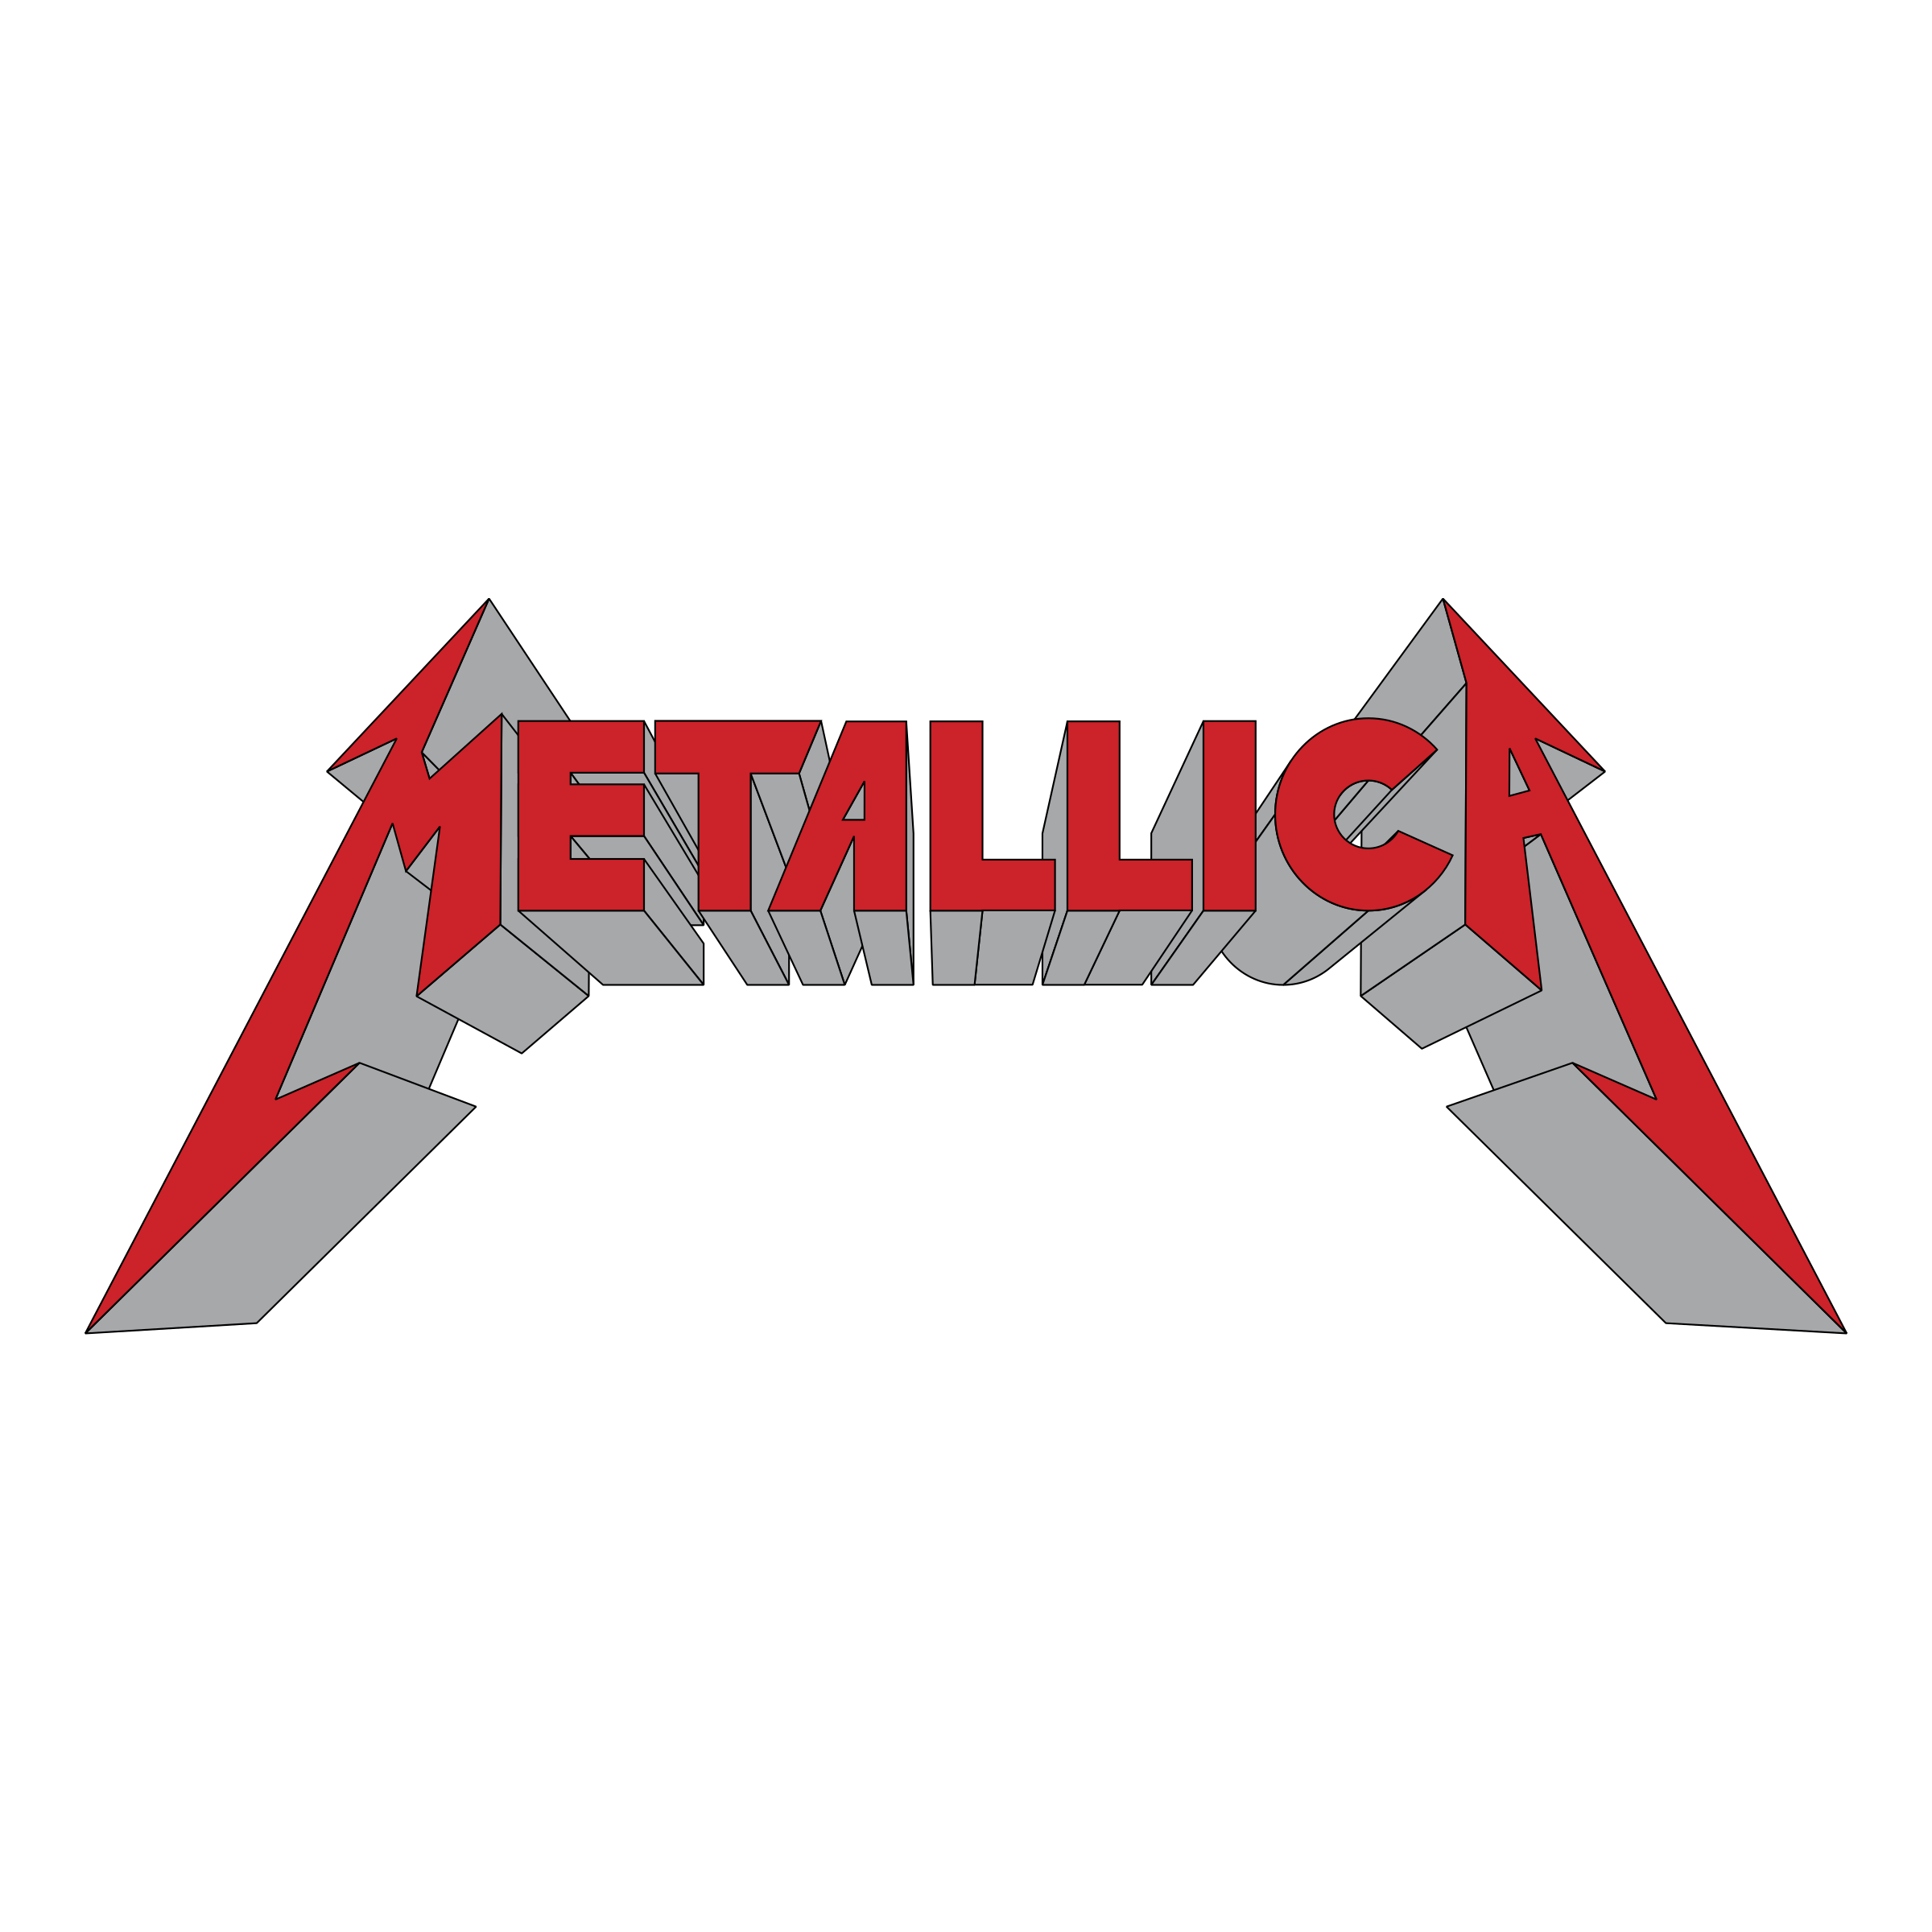 Metallica Logo PNG Transparent & SVG Vector.